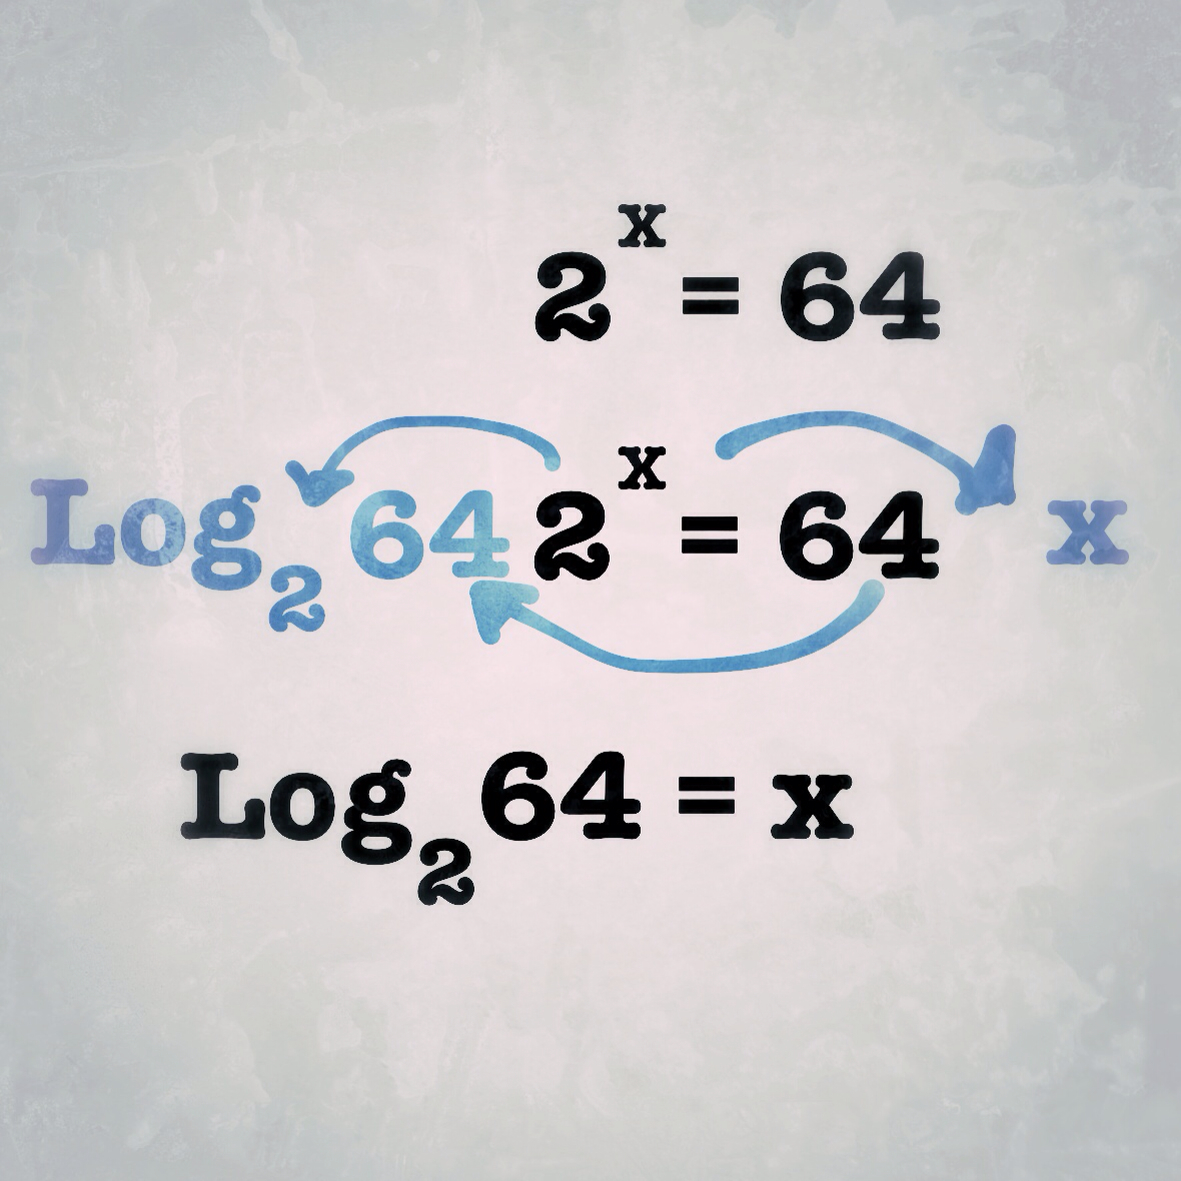 Calculus At 34 On Logarithms And Funny Notations